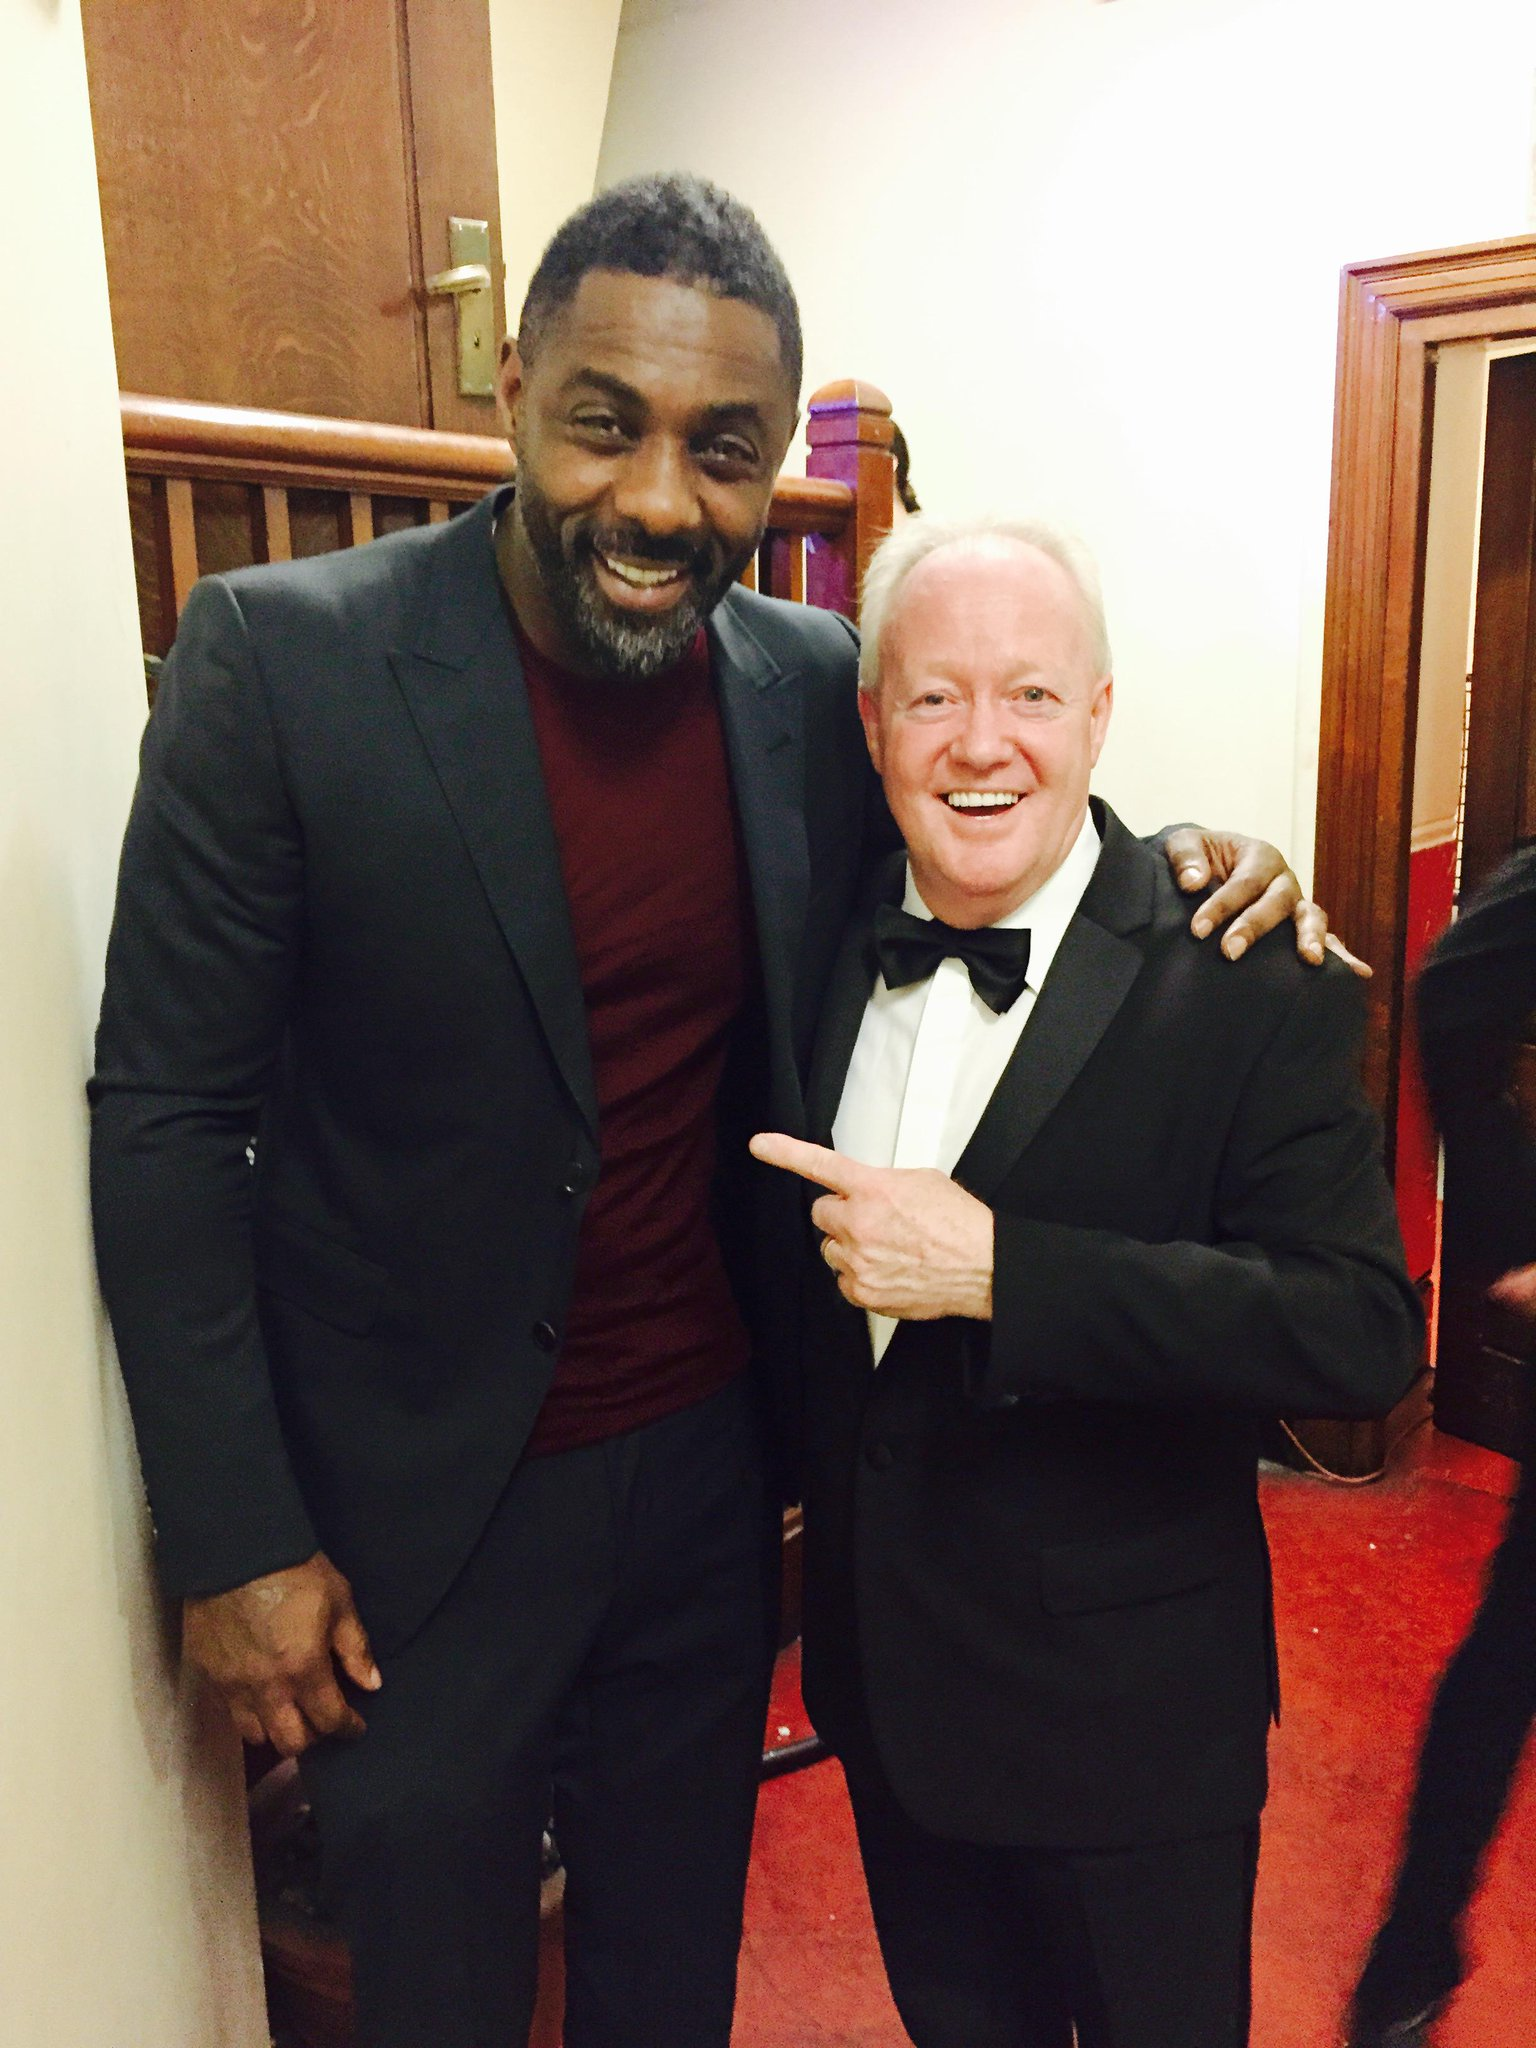 And what a star @idriselba http://t.co/R0hqTb3QS5